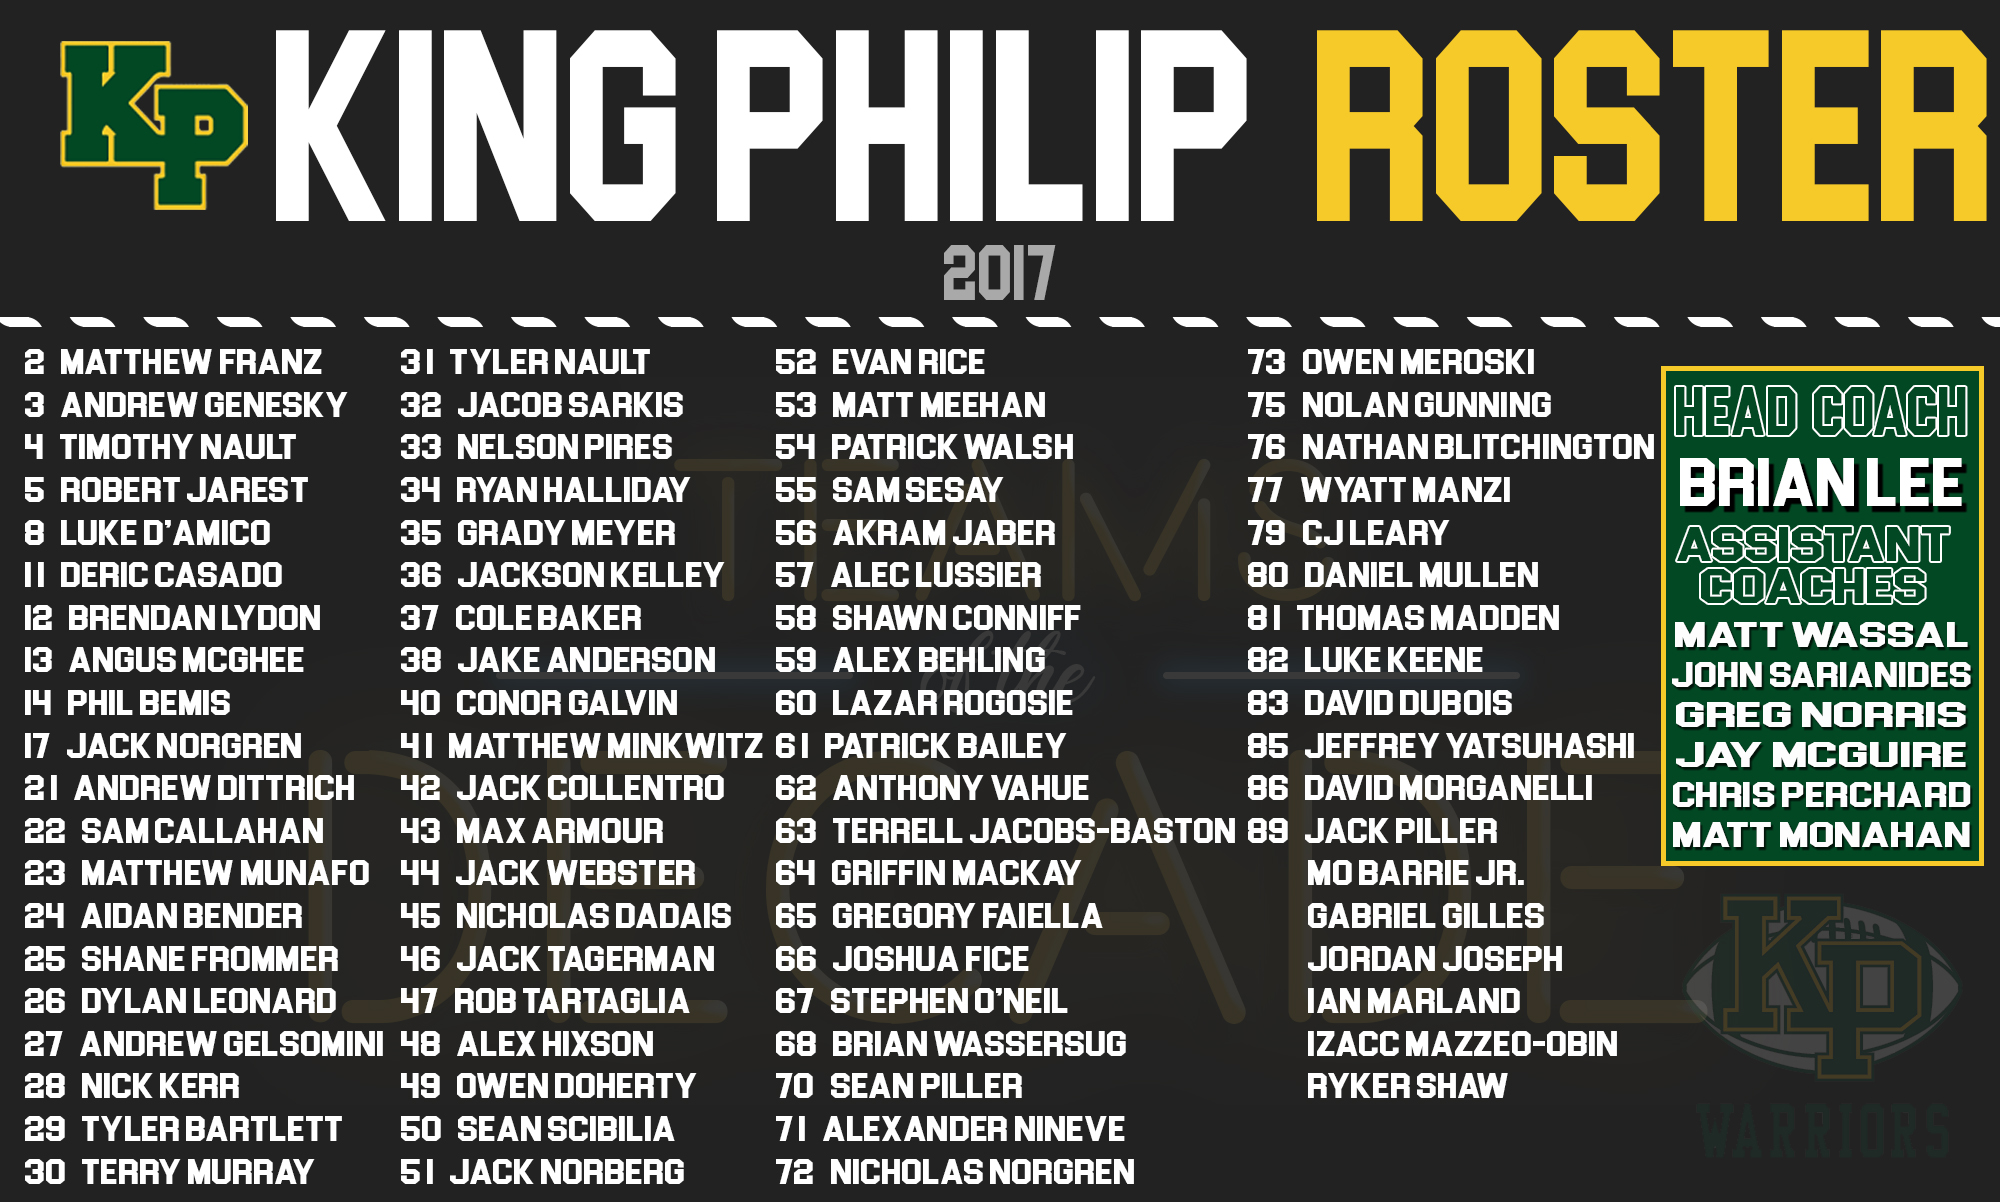 King Philip football